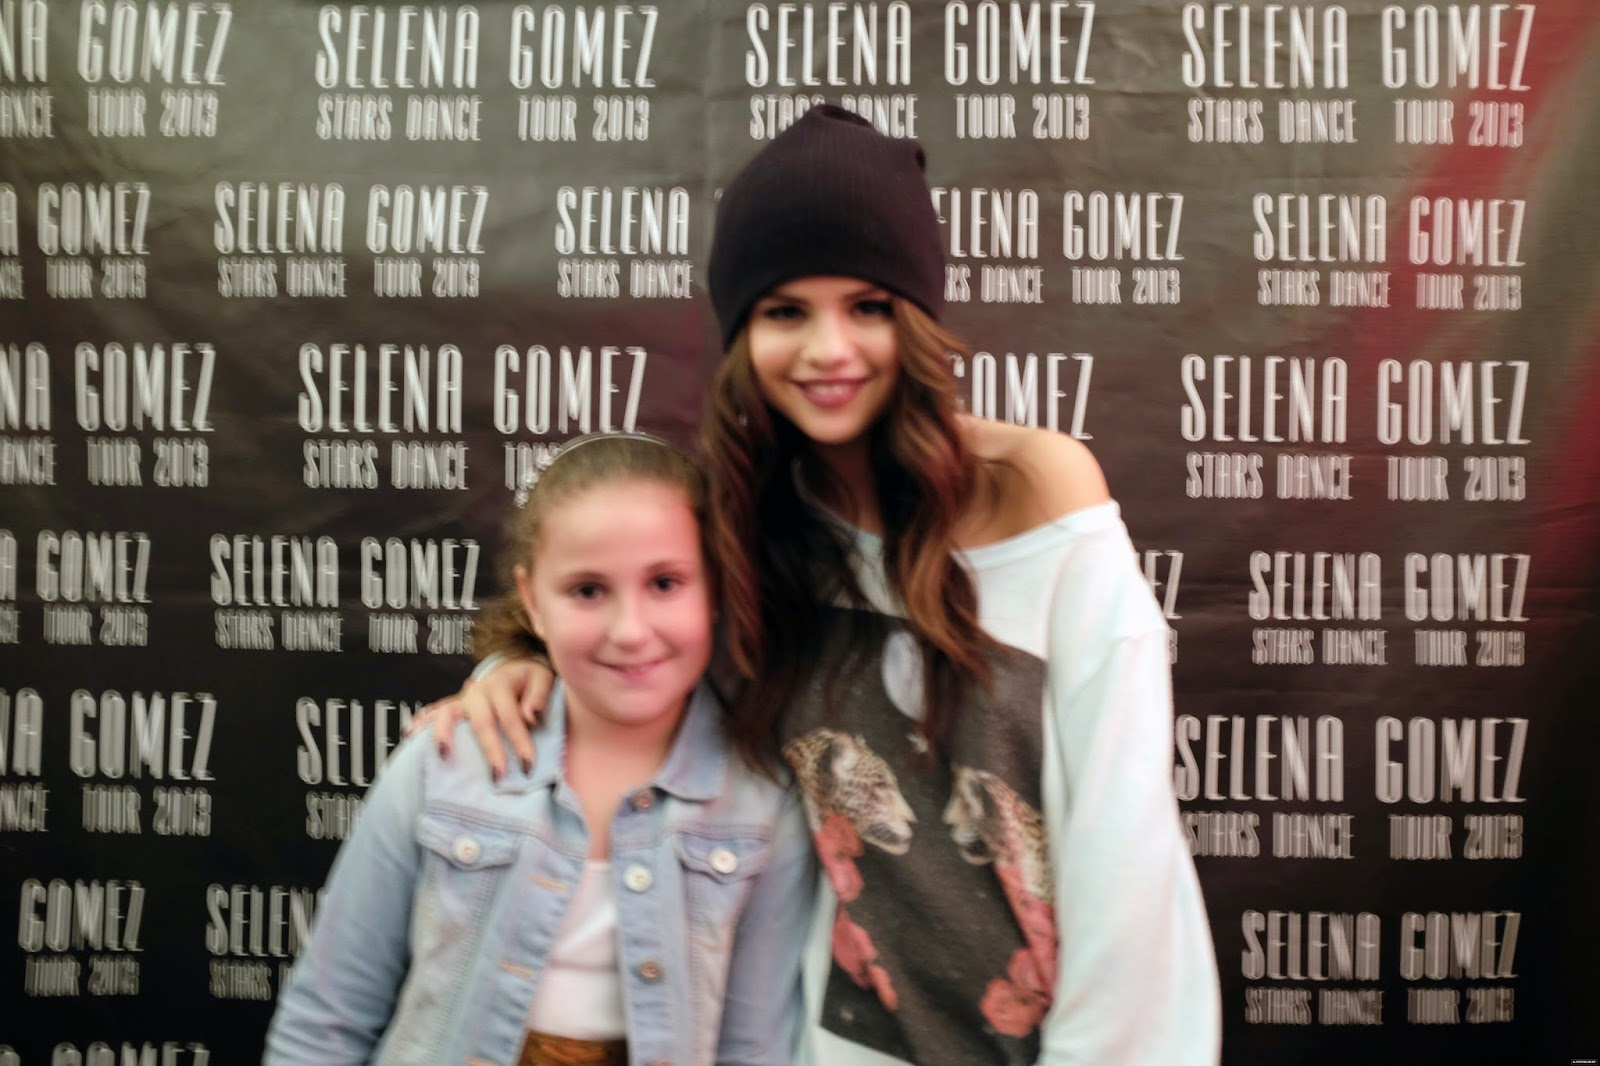 selena gomez stars dance tour meet and greet pictures with chris